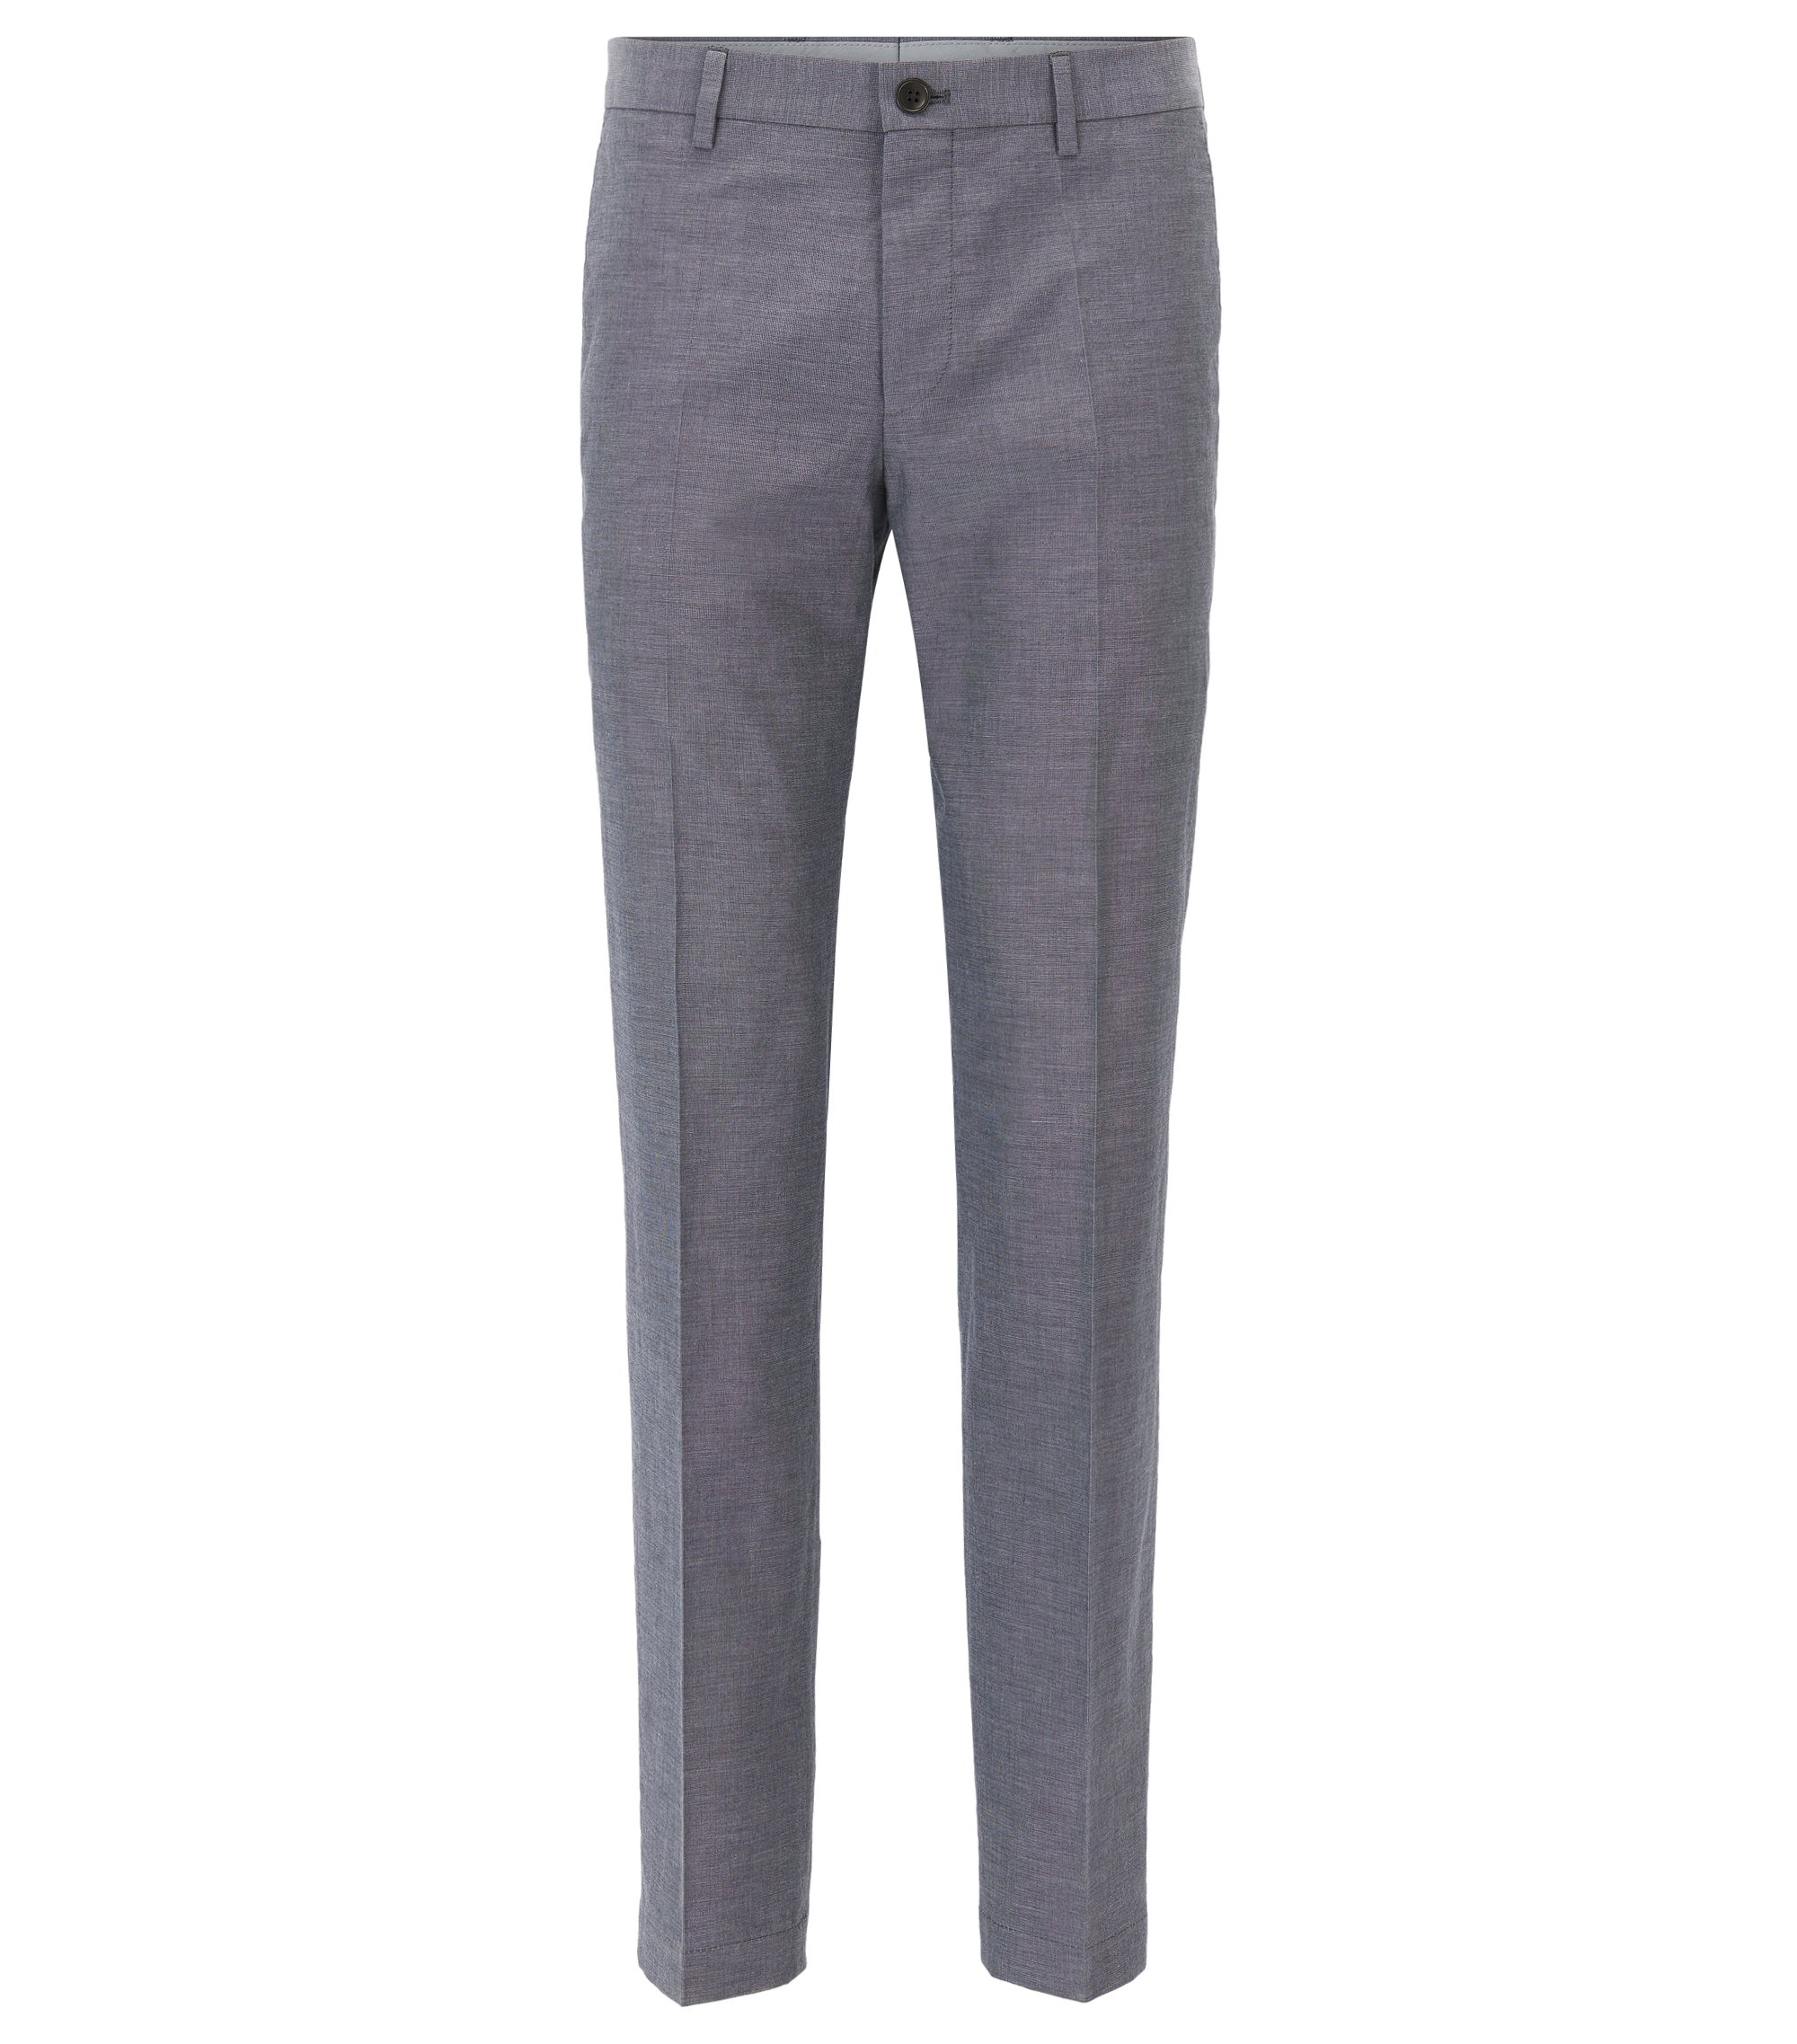 HUGO BOSS Pantalon Slim Fit en coton mélangé chiné